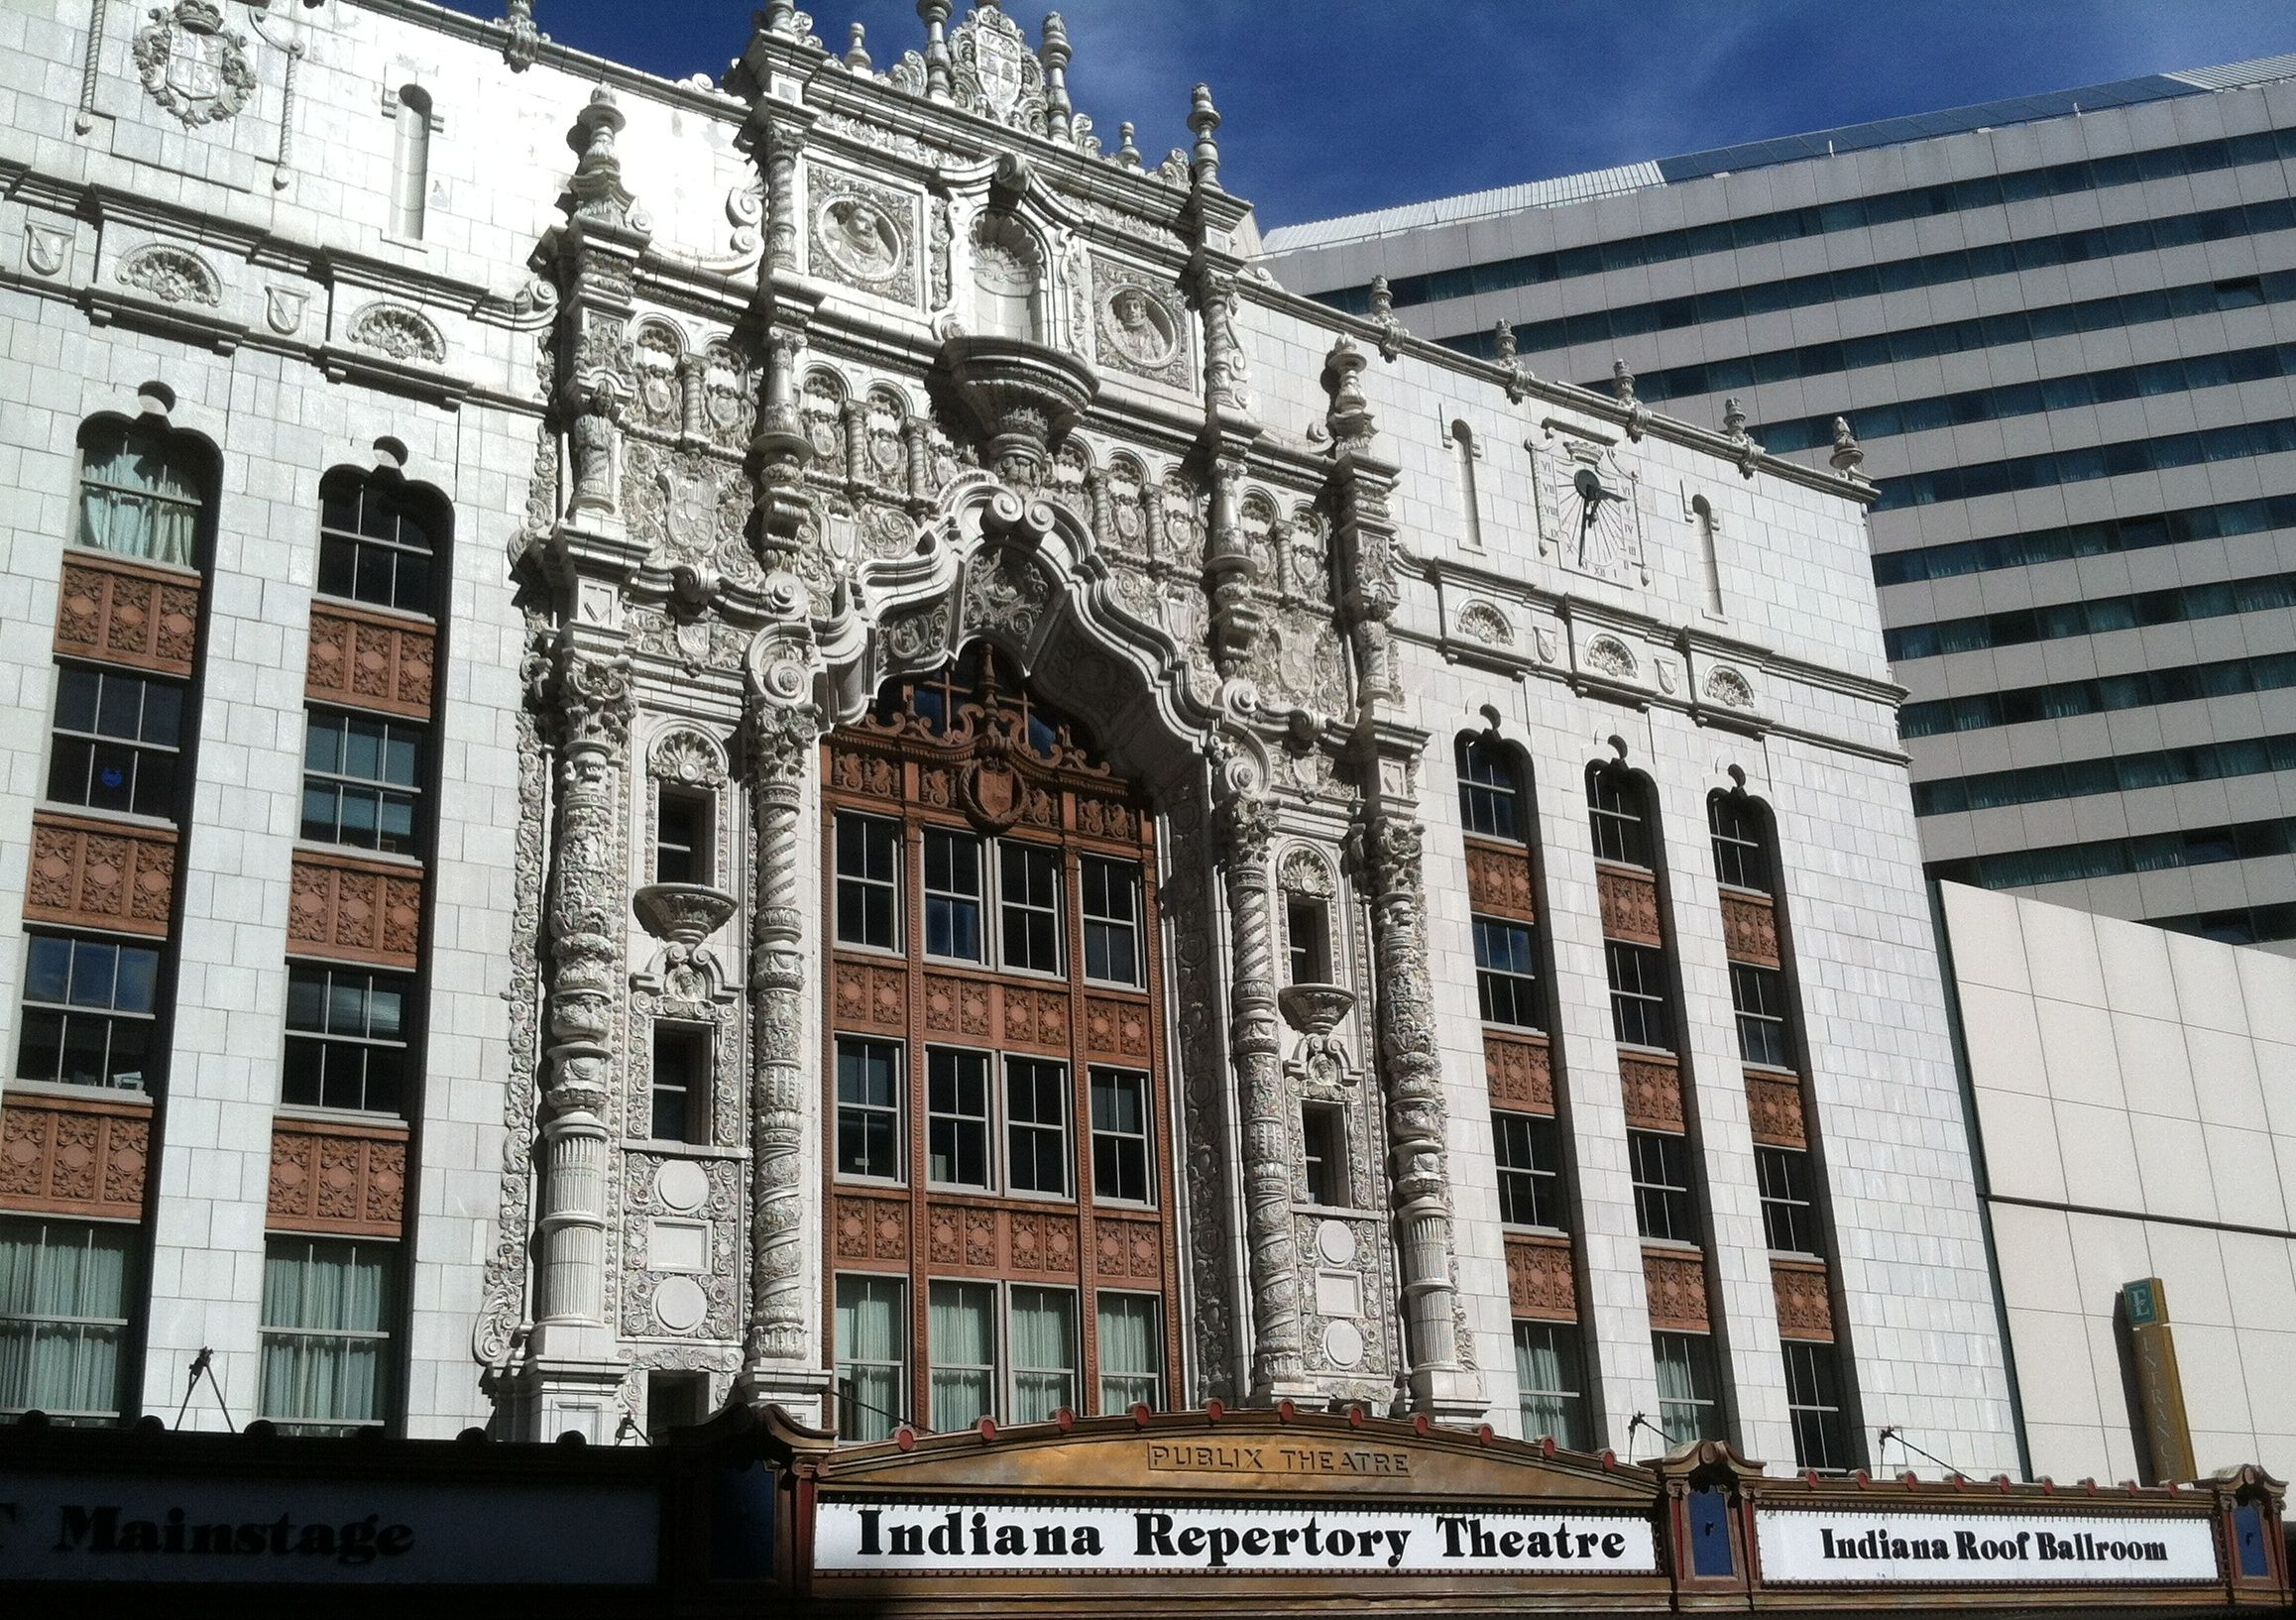 The Indiana Repertory Theatre With The Indiana Roof Ballroom